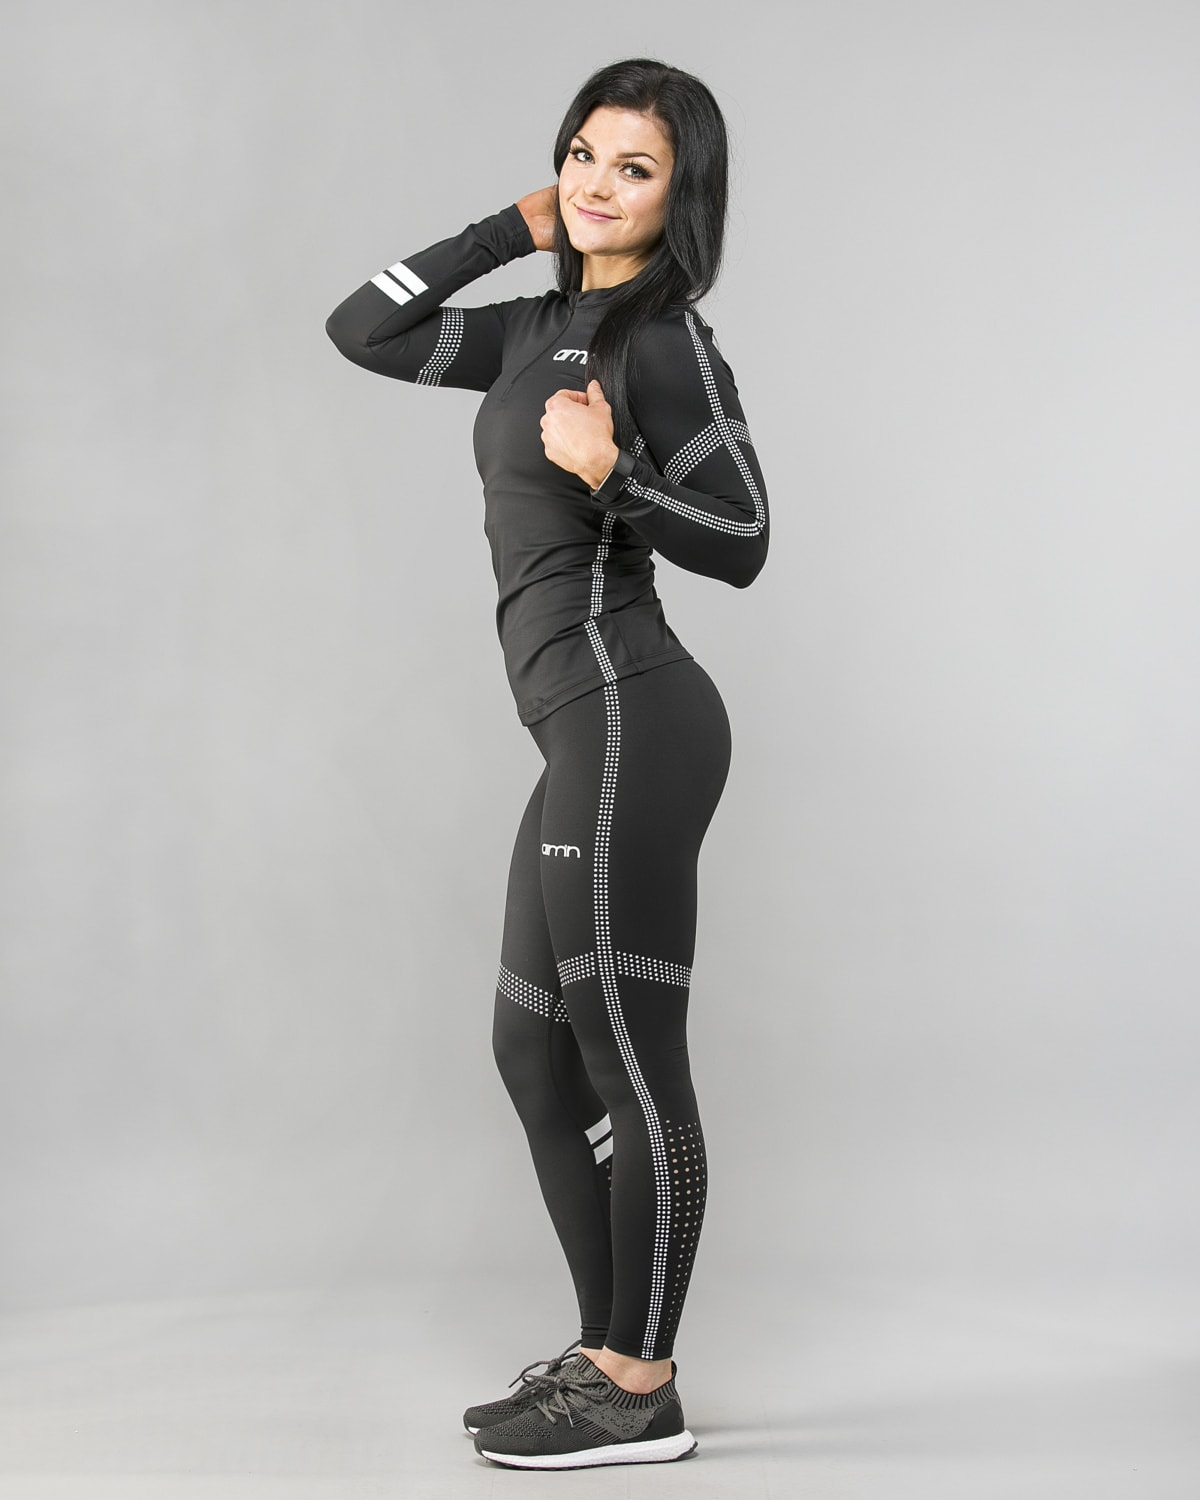 Aim'n Vision Long Sleeve and Tights c